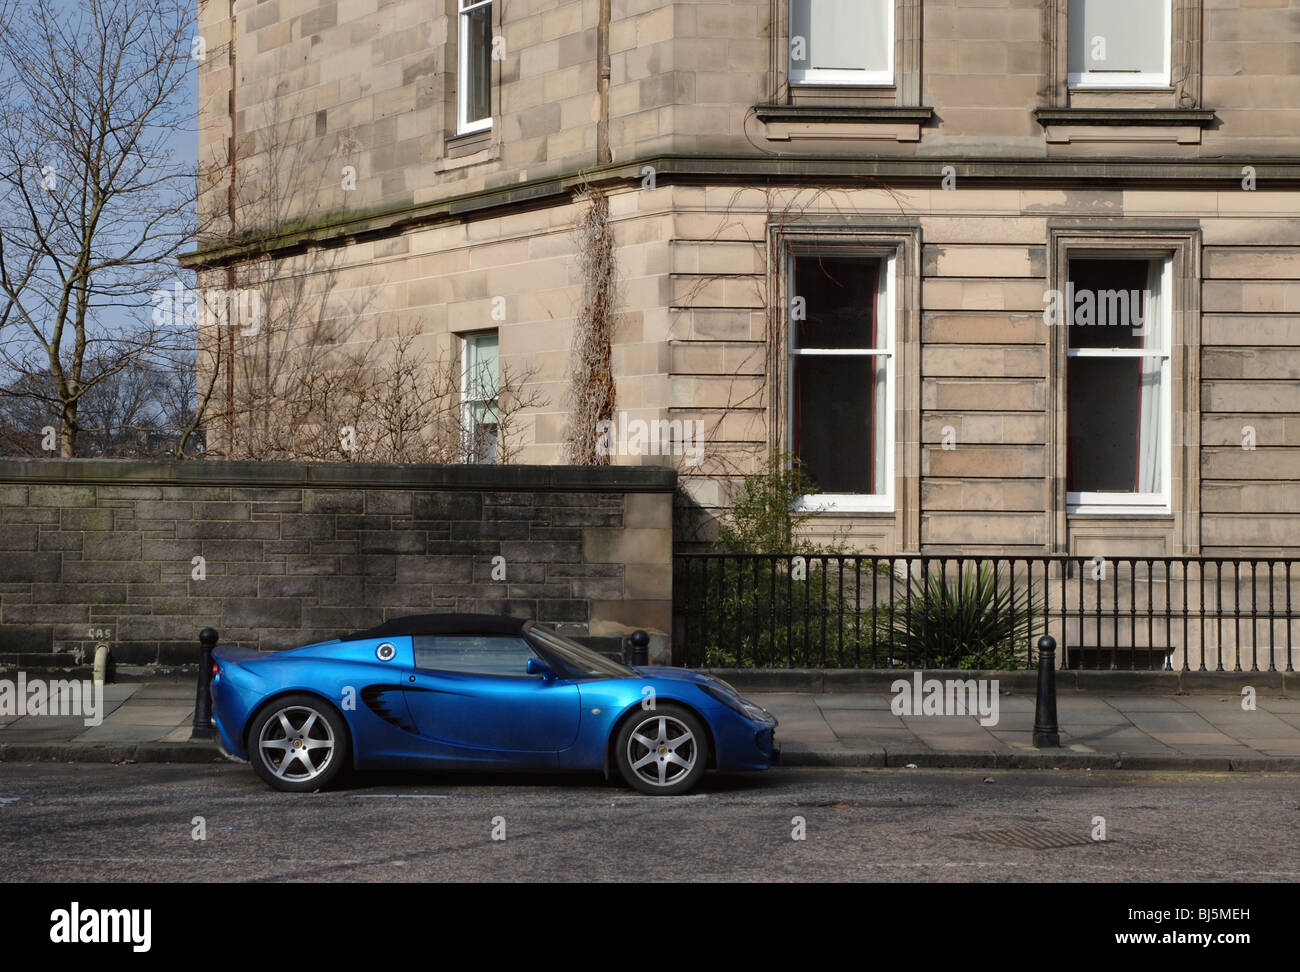 Blue Lotus Elise Parked In Edinburghu0027s West End.   Stock Image